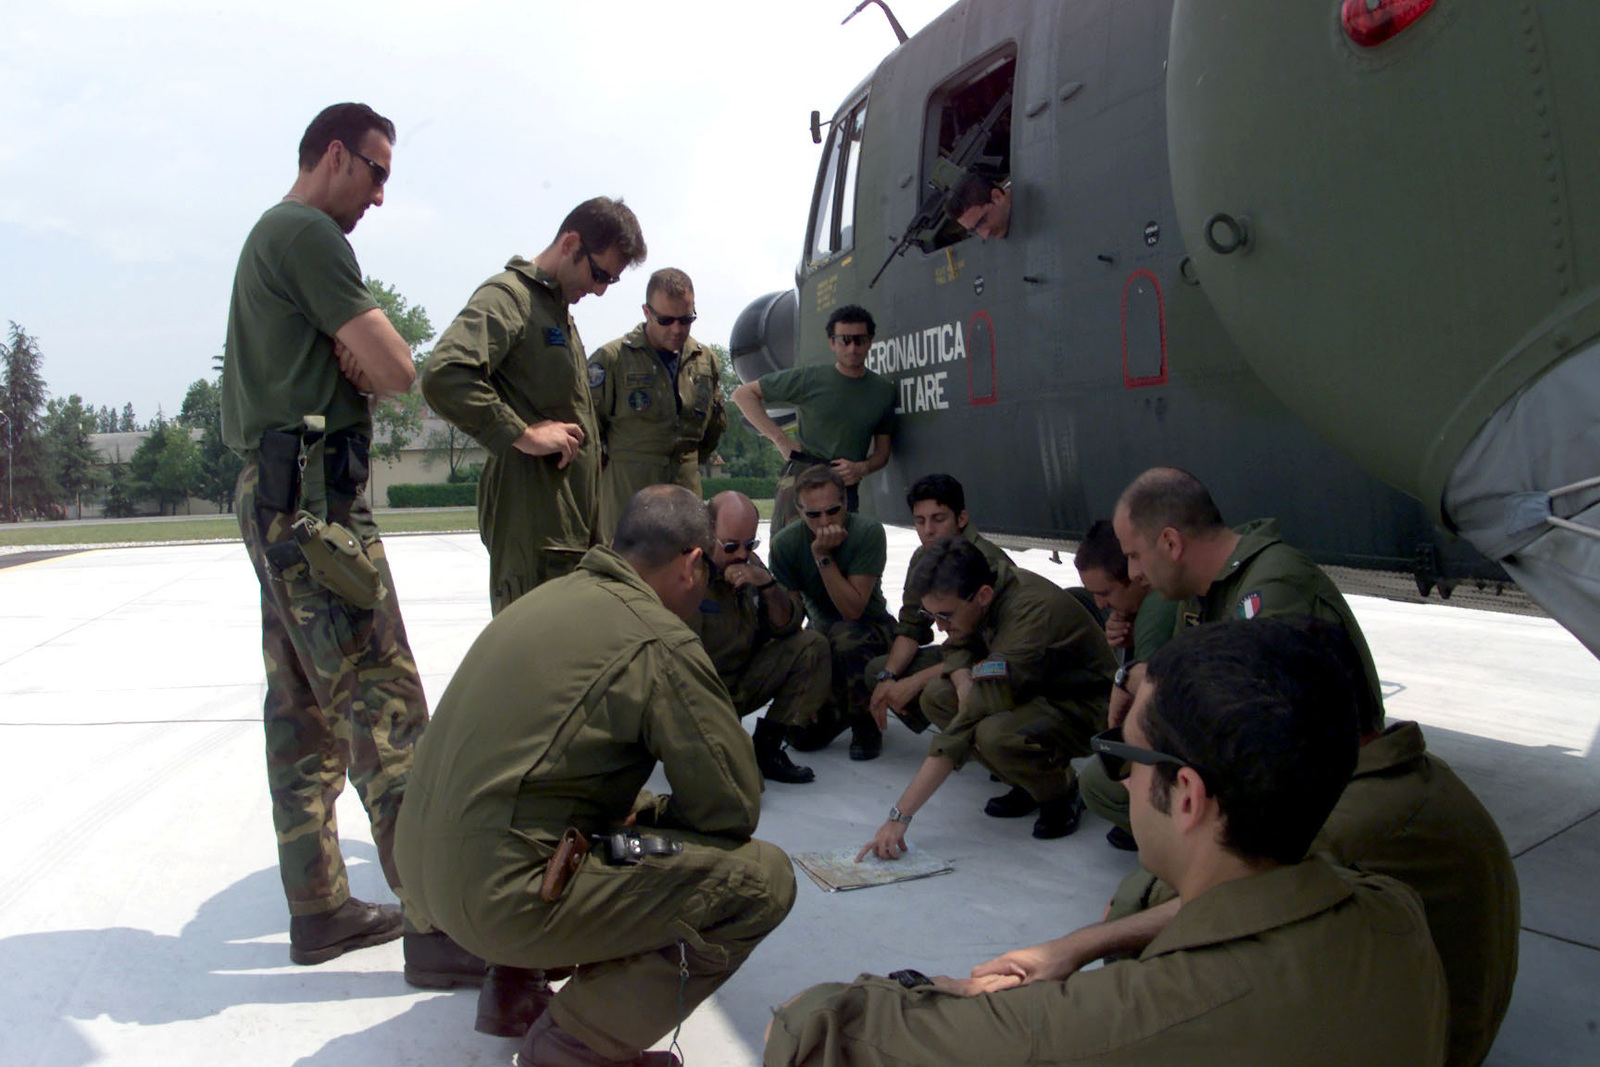 Italian Air Force Lieutenant Nanni Adrea (Pointing at map), briefs the two crews of the Italian CSAR( Combat Search And Rescue) crews that are simulating extraction of NEO (Non-combatant Evacuation Operation) evacuees during Exercise VENETO RESCUE on June 6th, 2000